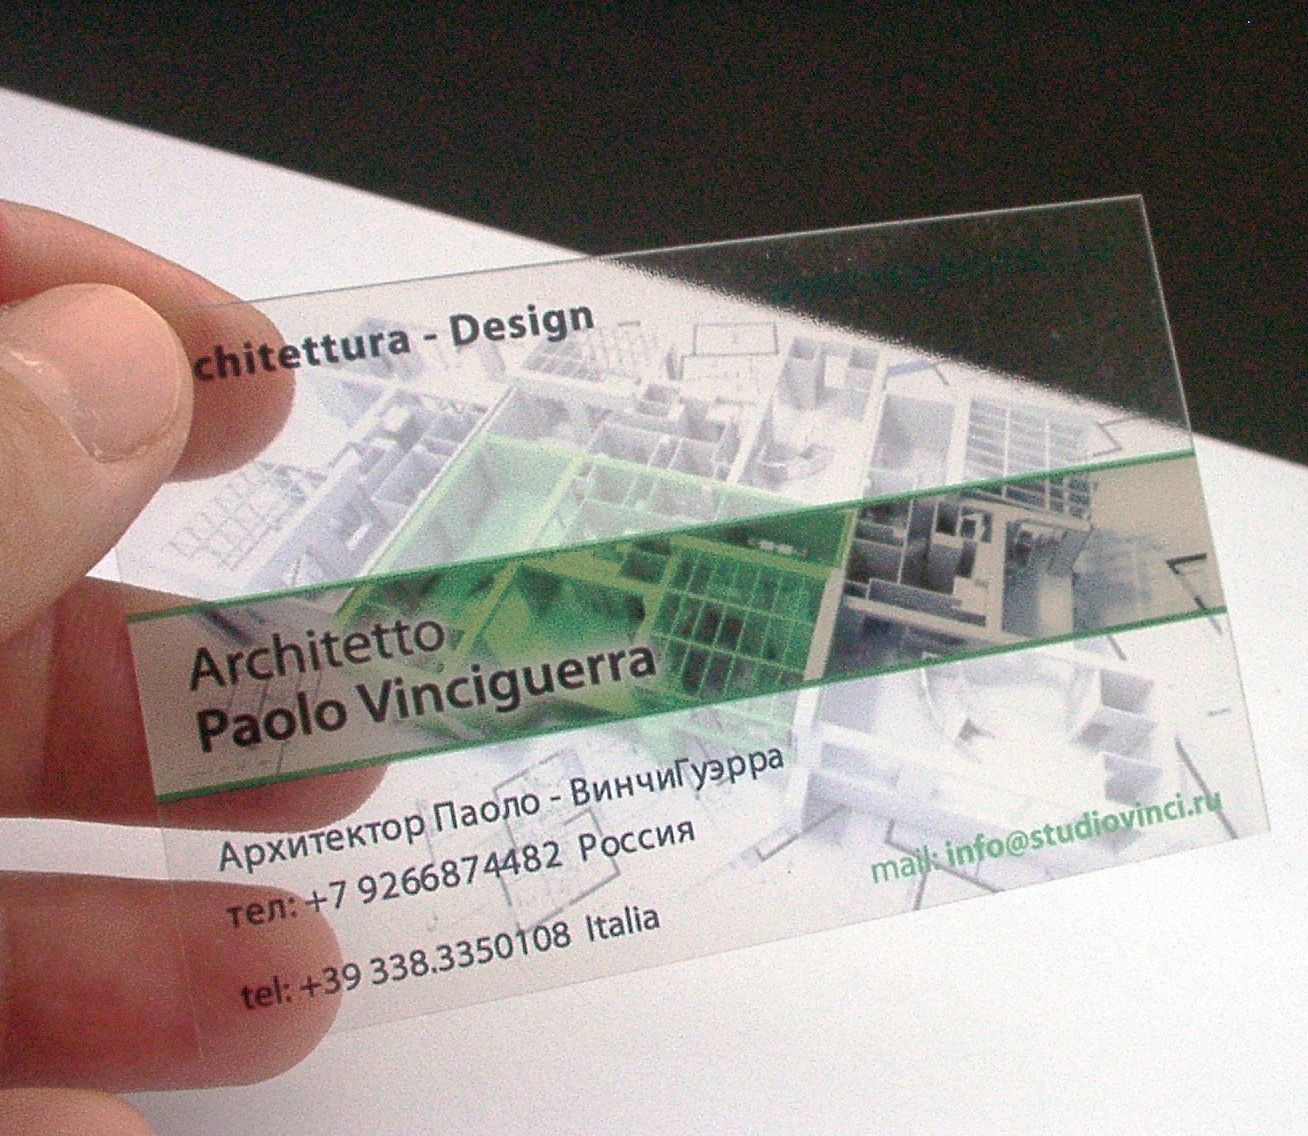 Connu architect business cards – biglietti da visita per architetto  PH59